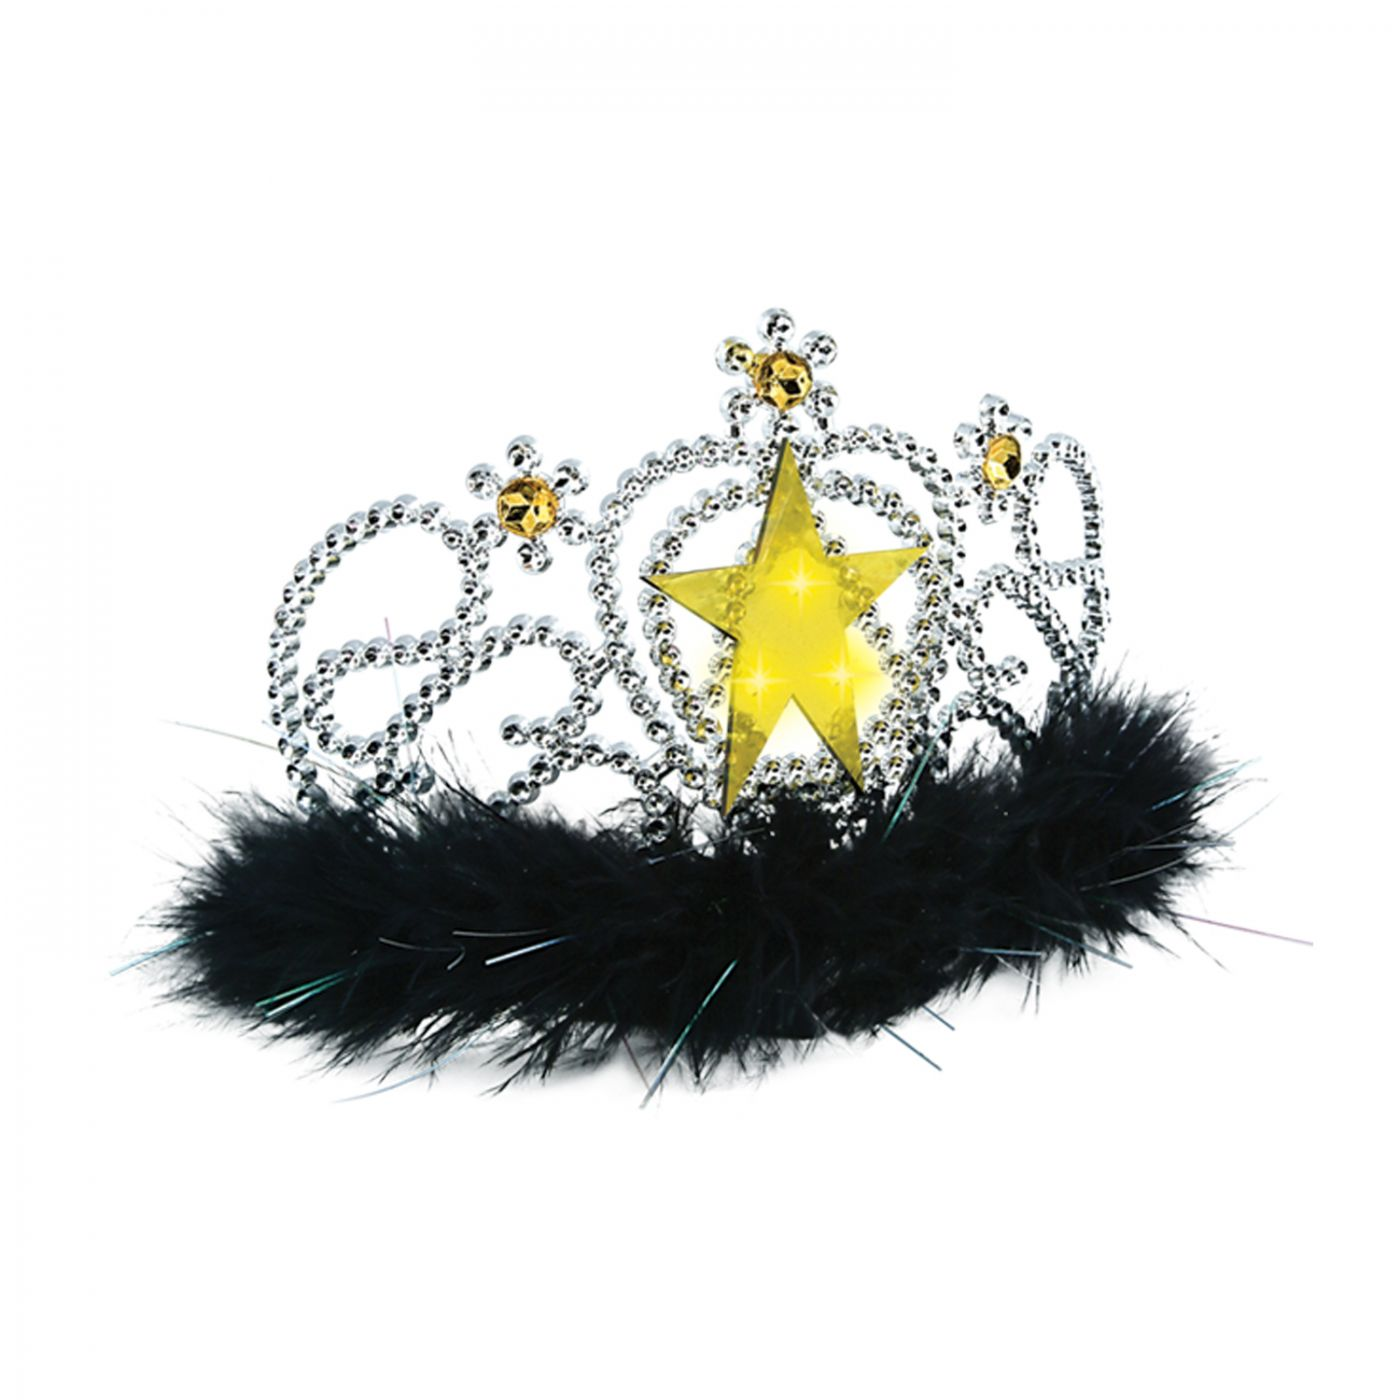 Plastic Light-Up Star Tiara (6) image